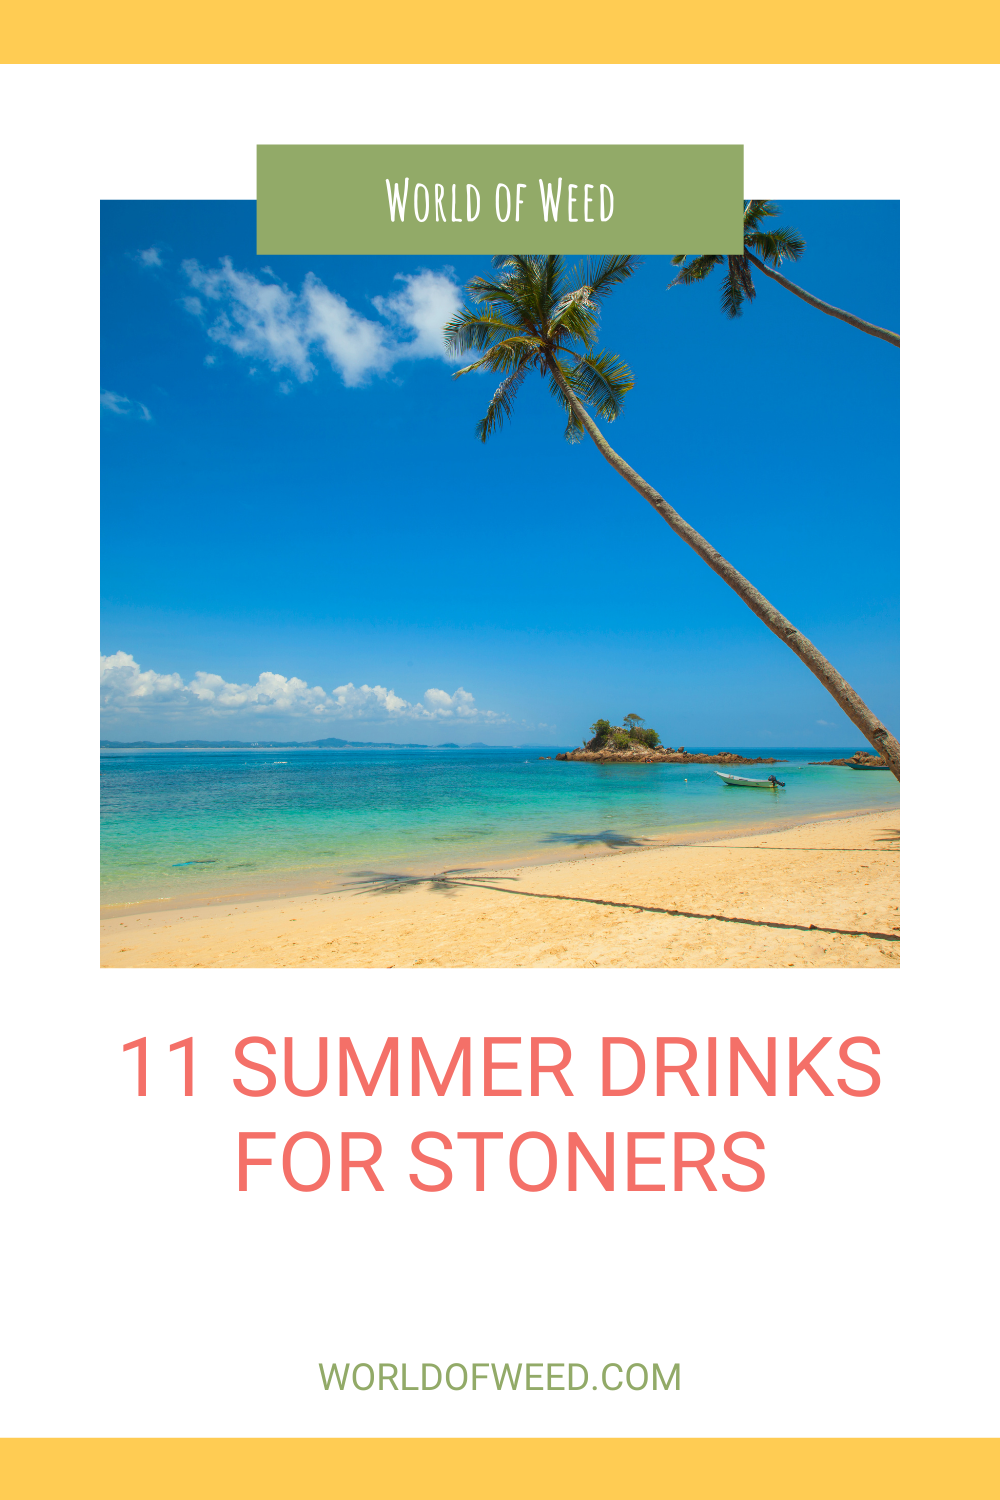 11 Summer Drink Options for Stoners